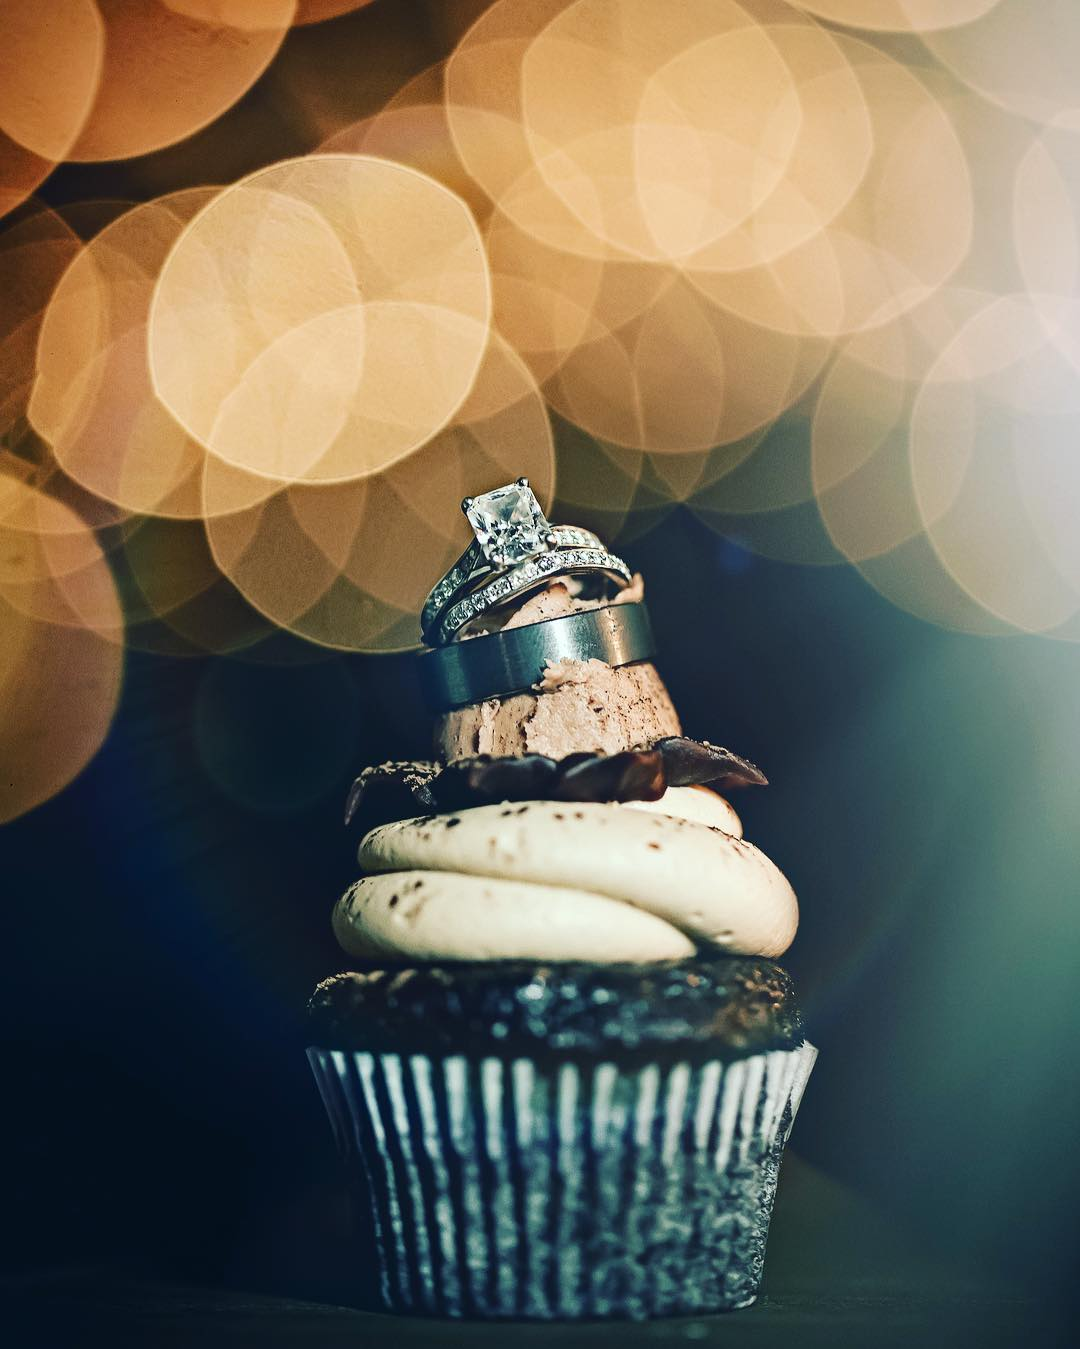 Wedding rings placed over a cupcake with frosting with bokeh effect in the background